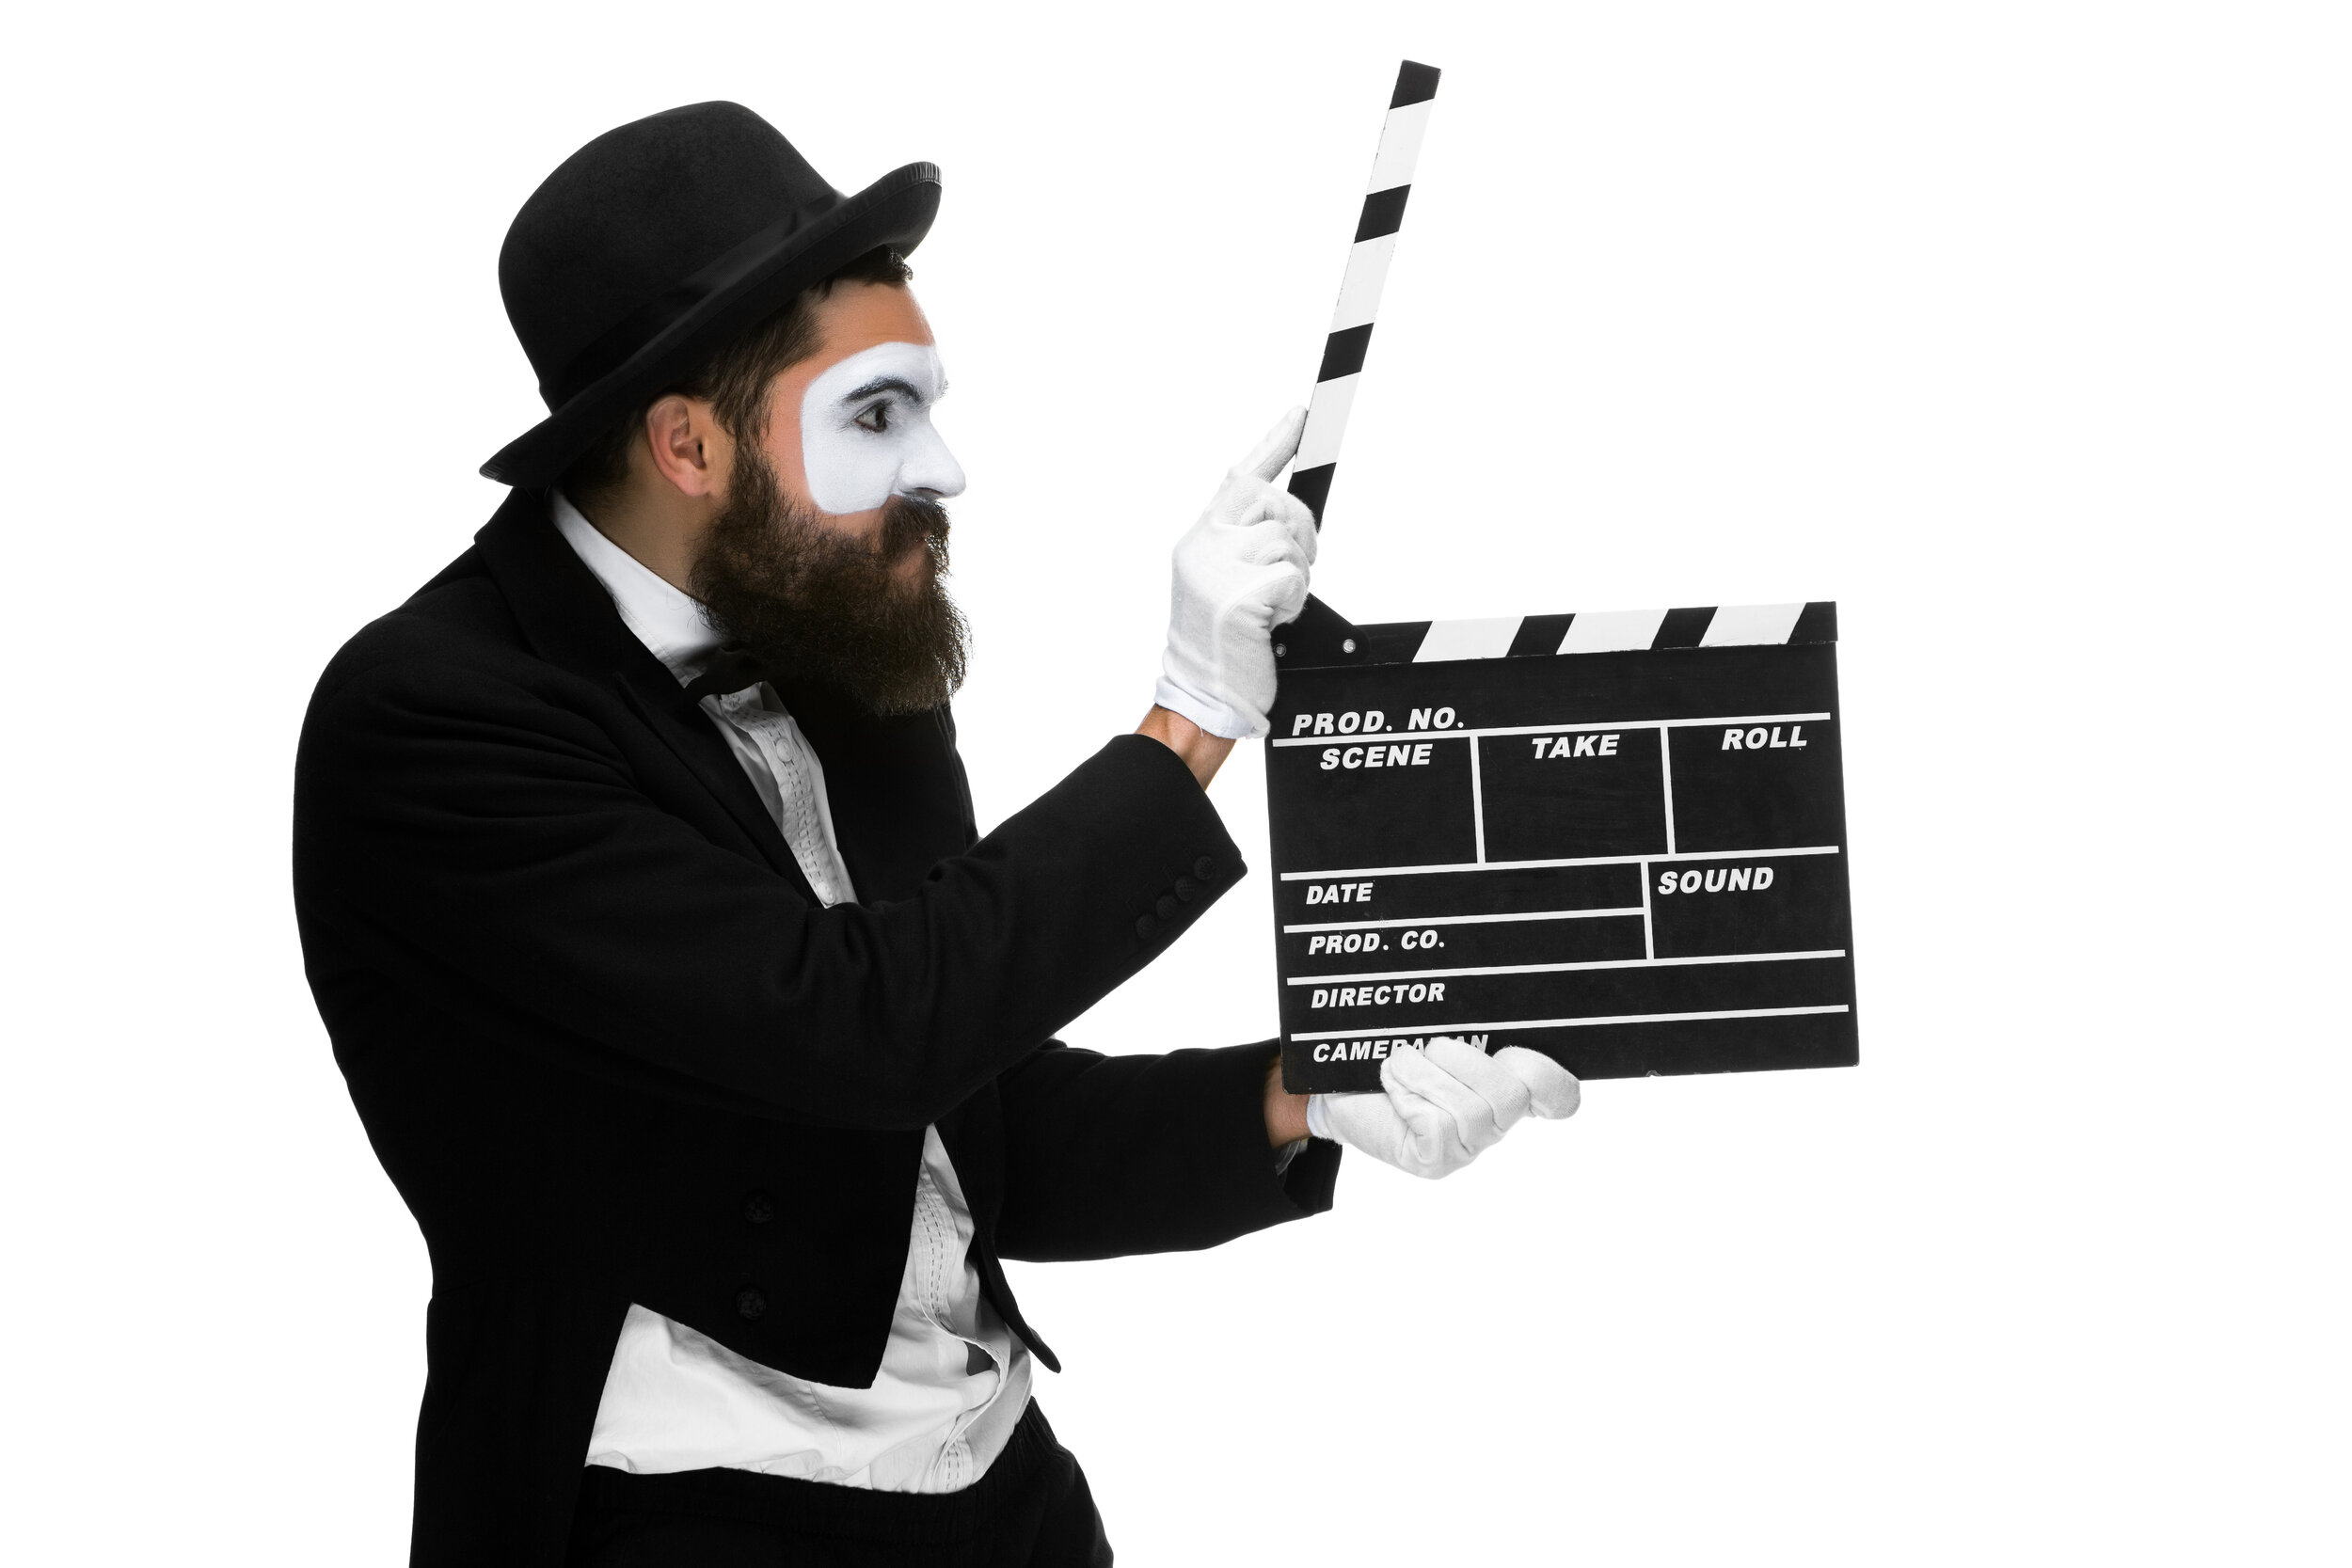 man-in-the-image-mime-with-movie-board-P342HFQ.jpg